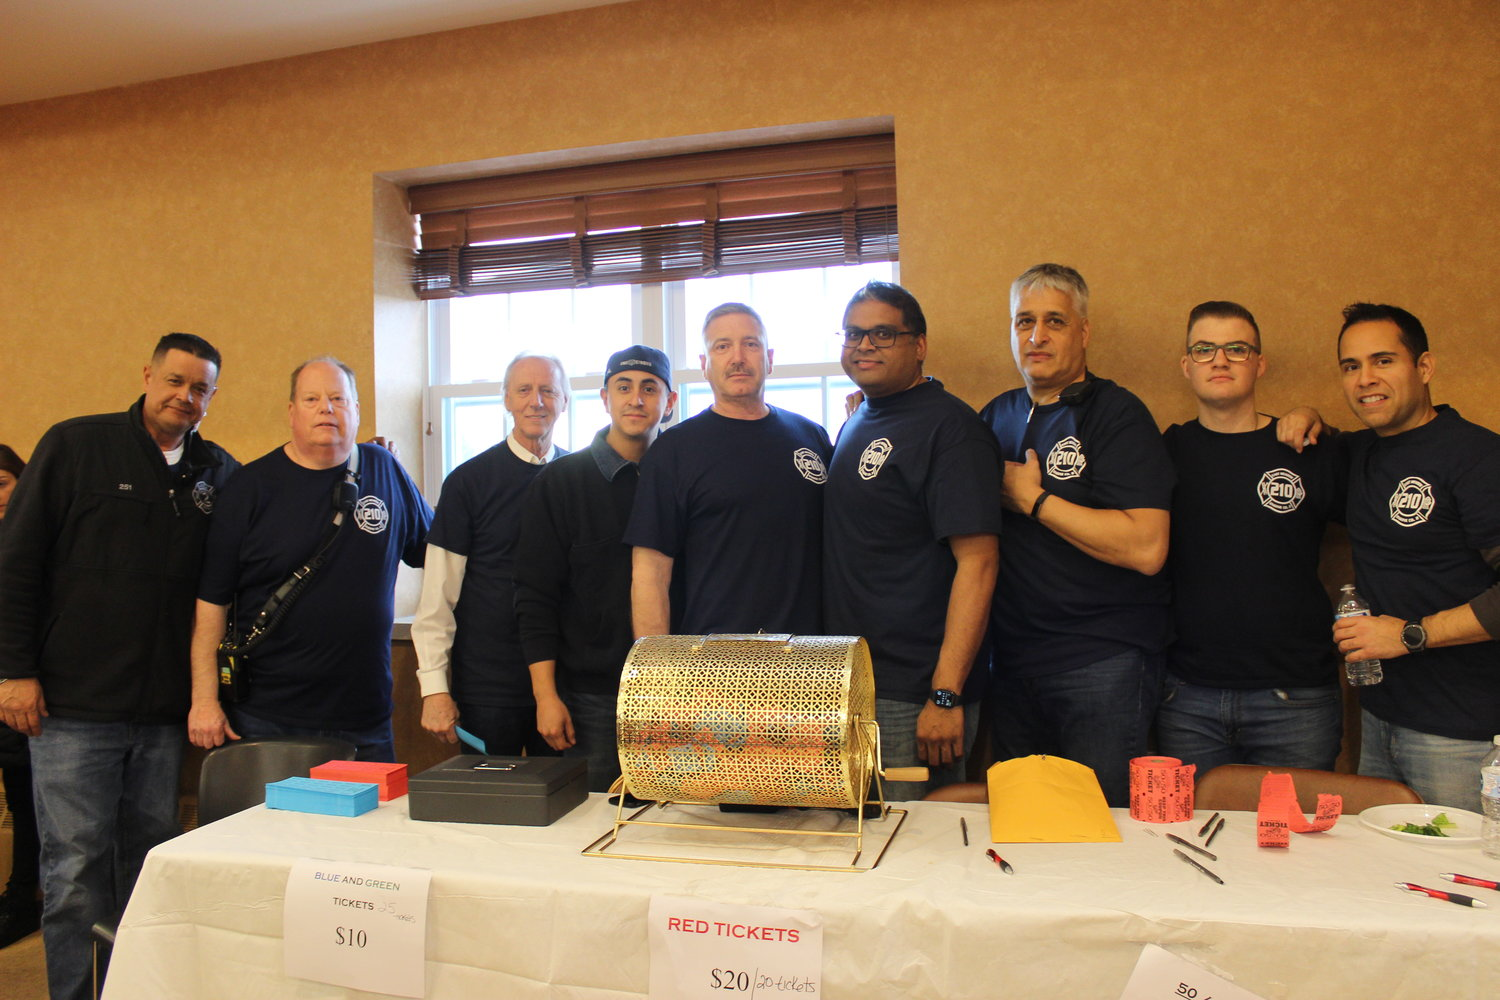 Hosting the fundraiser were the volunteers of Engine Company #2, of which Smith was captain.